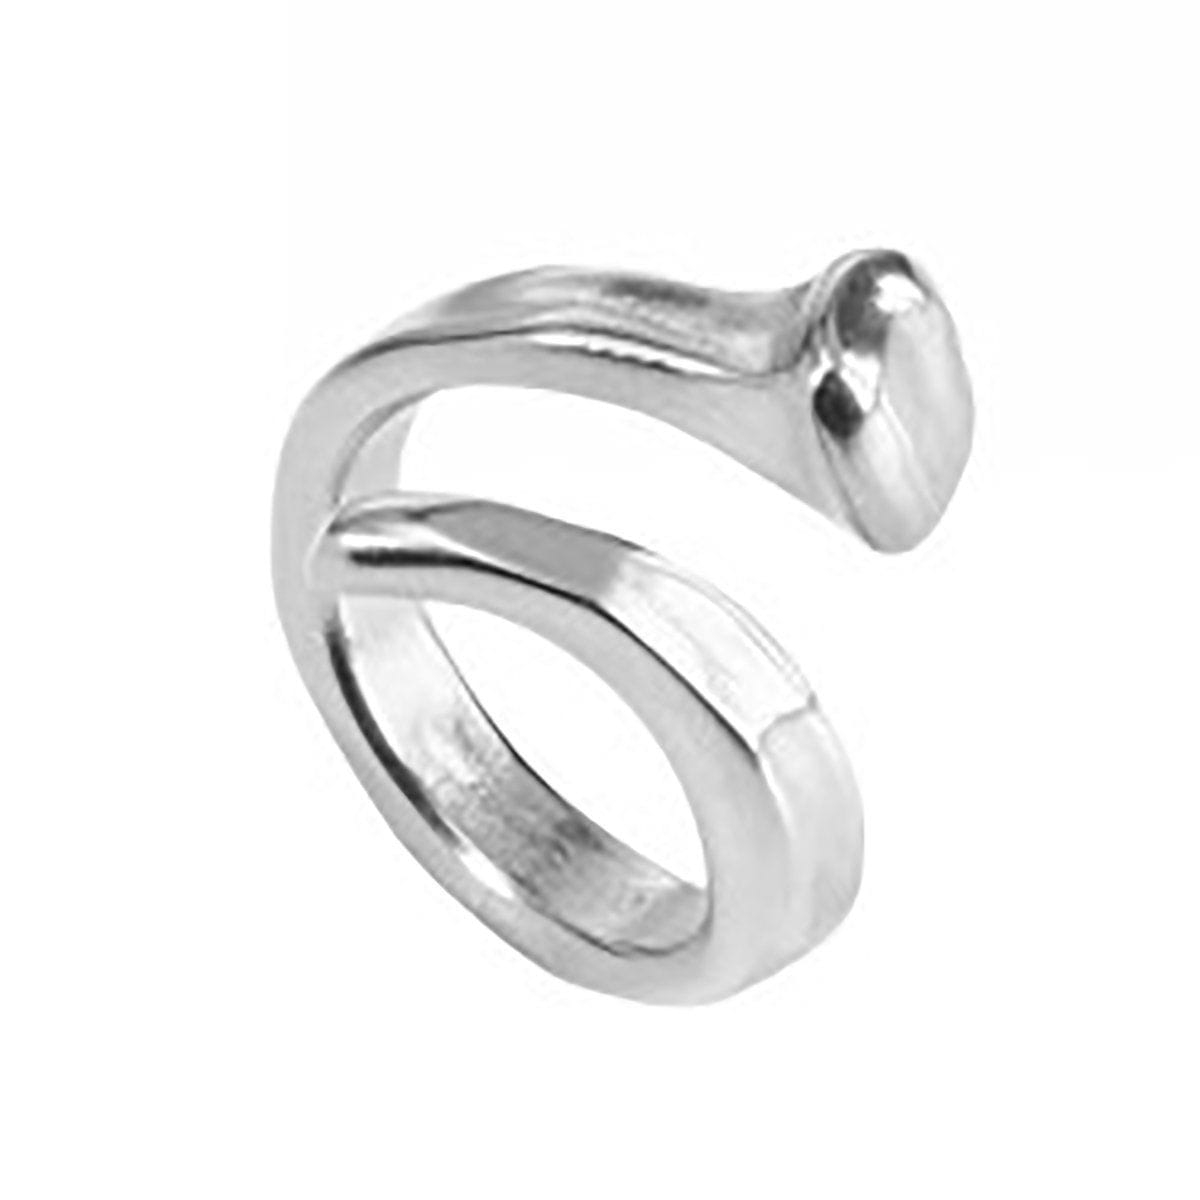 B12 Layered Silver Nail Ring - ANI0456MTL0000